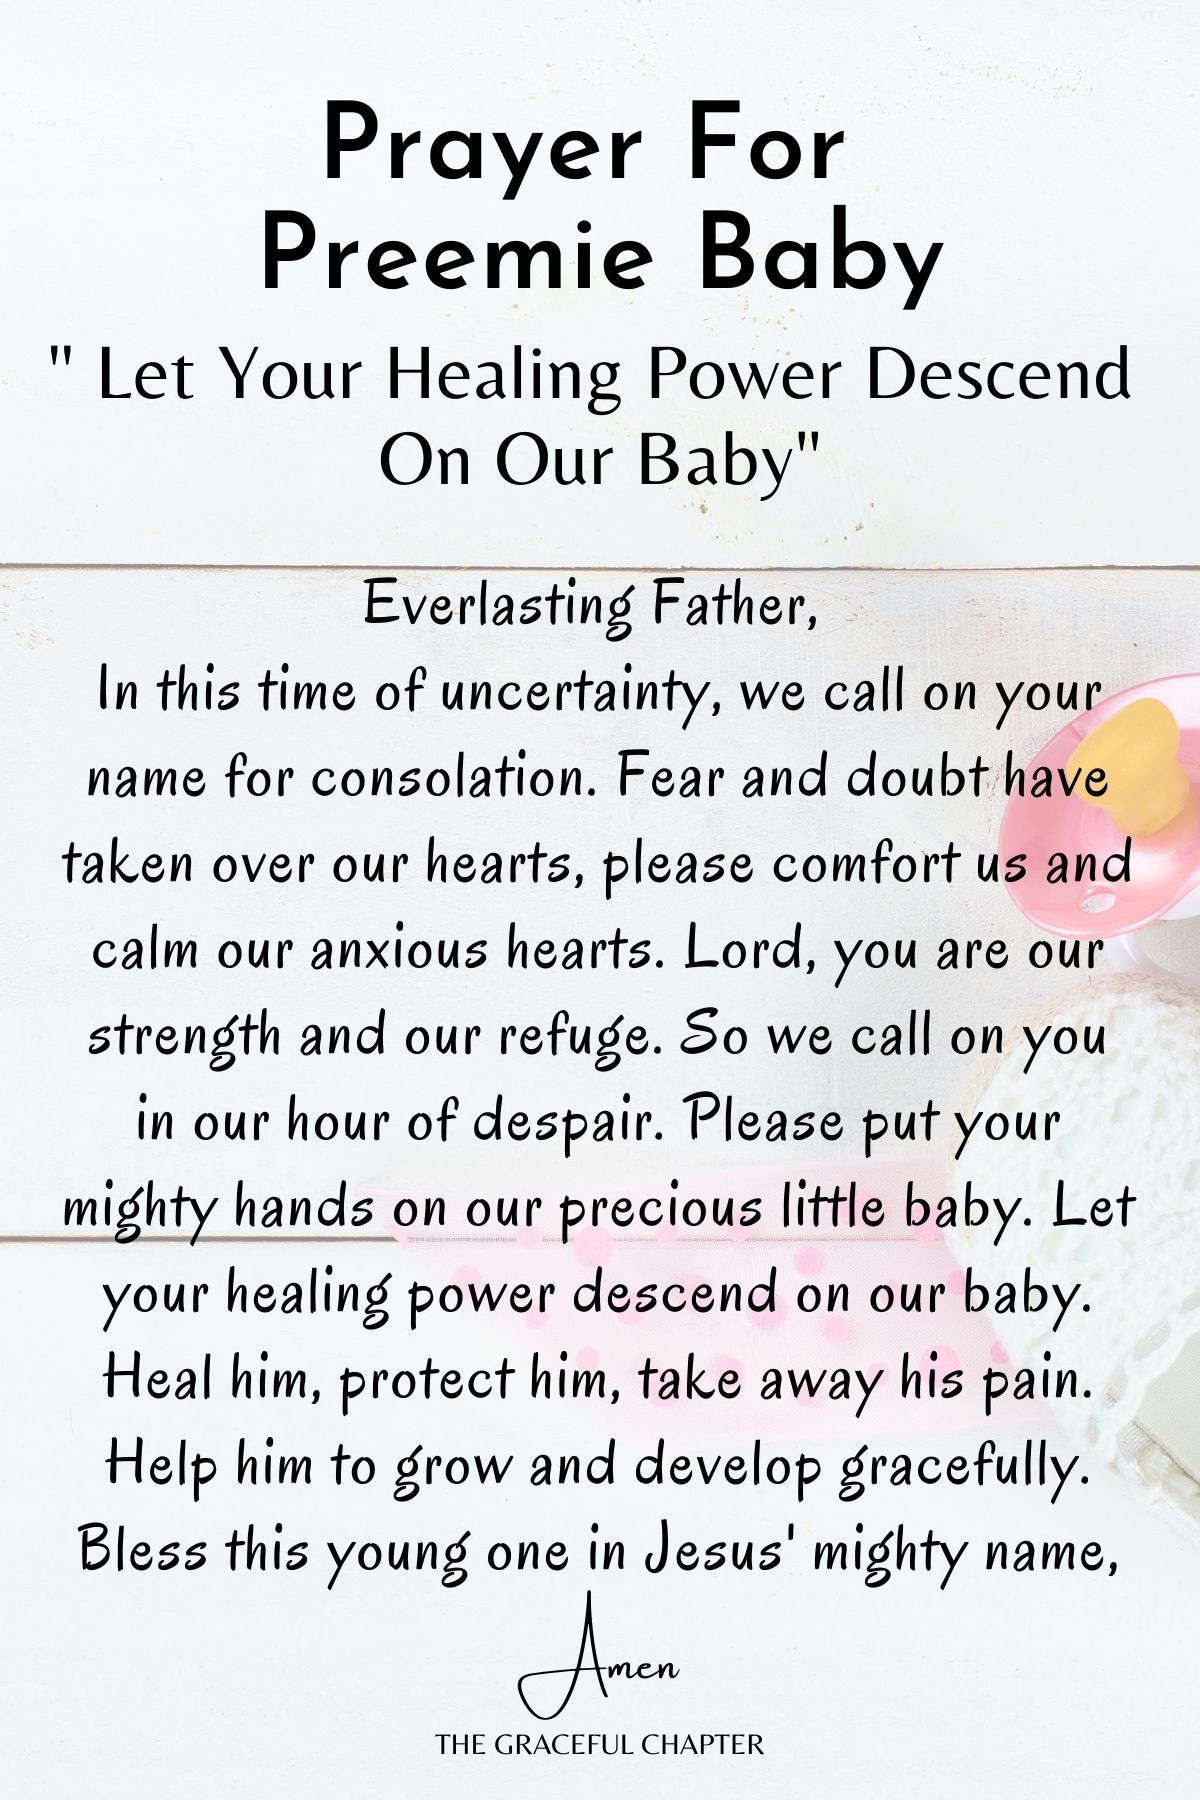 Let your healing power descend on our baby